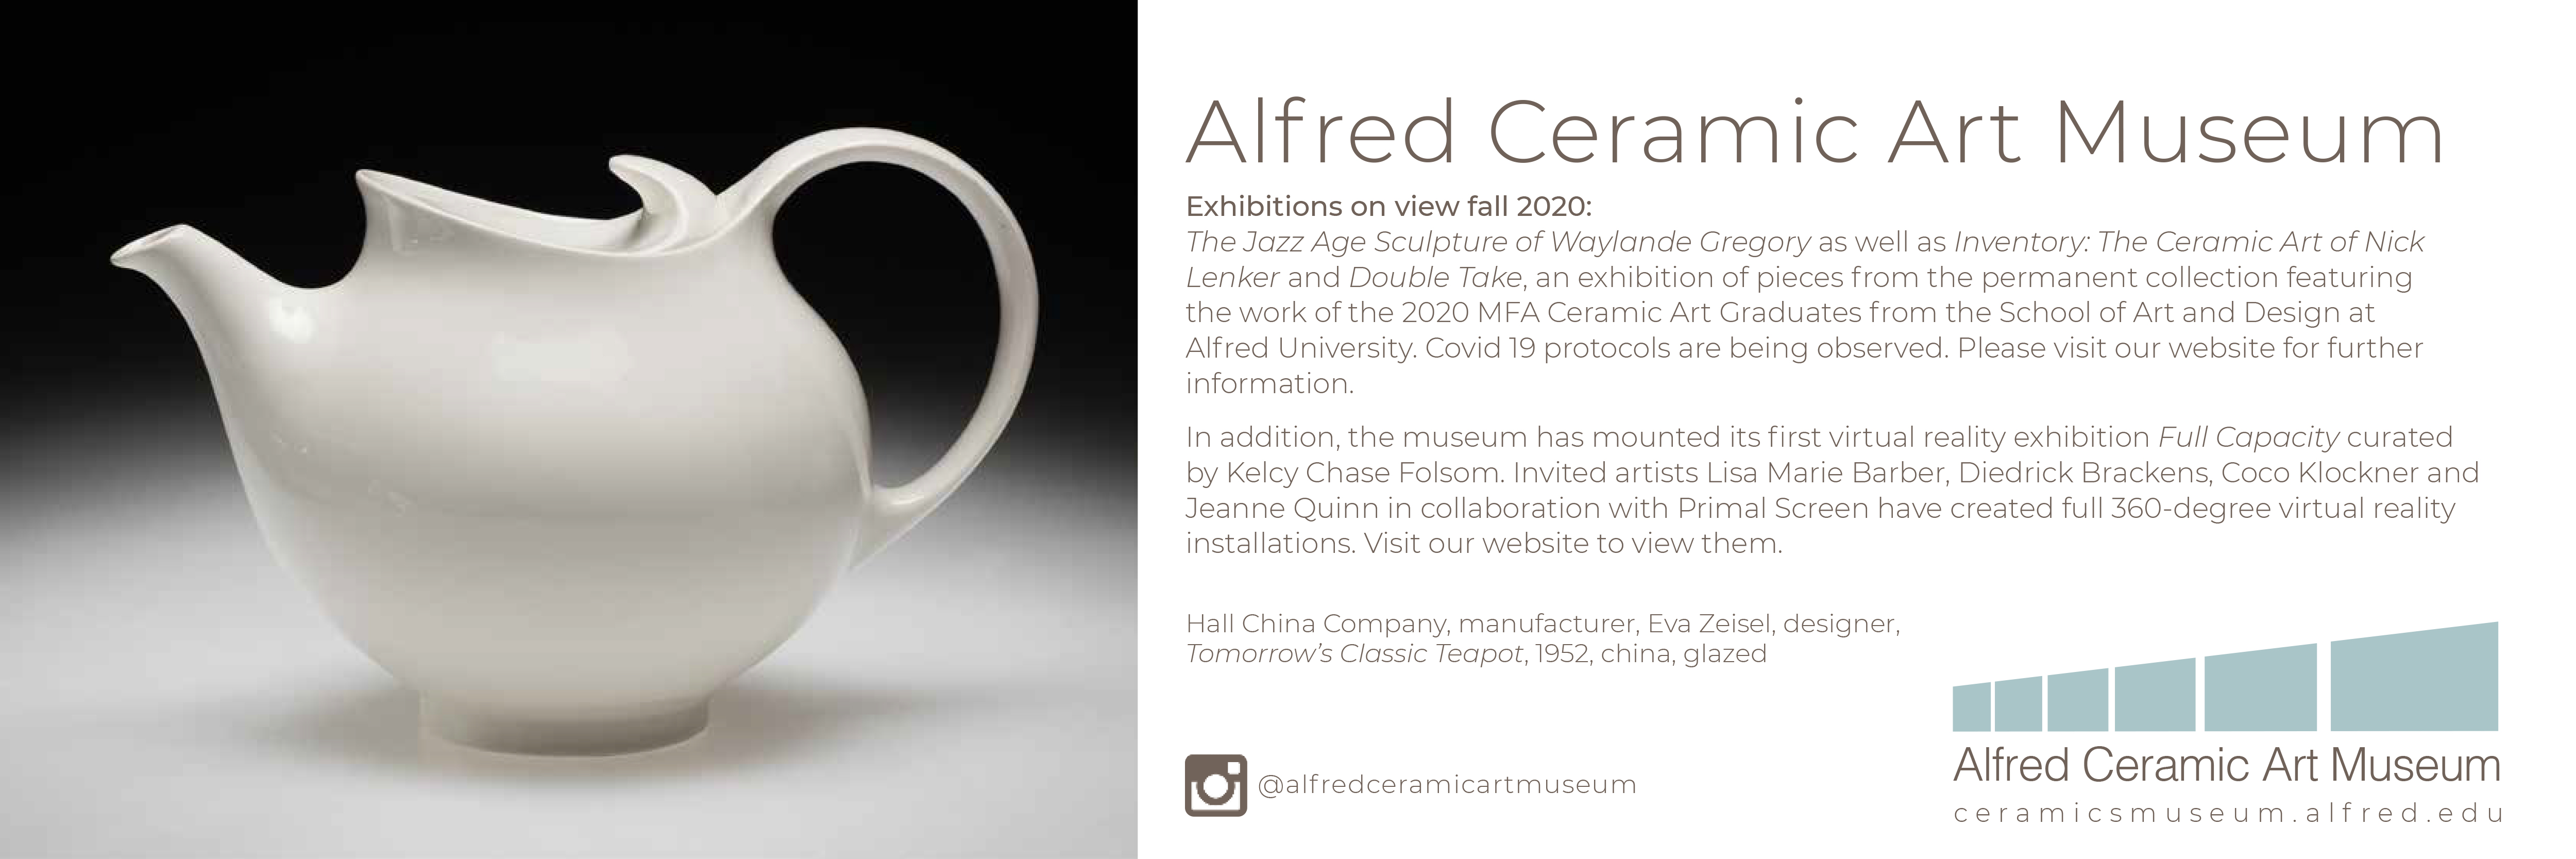 Ad from Alfred Ceramic Art Museum